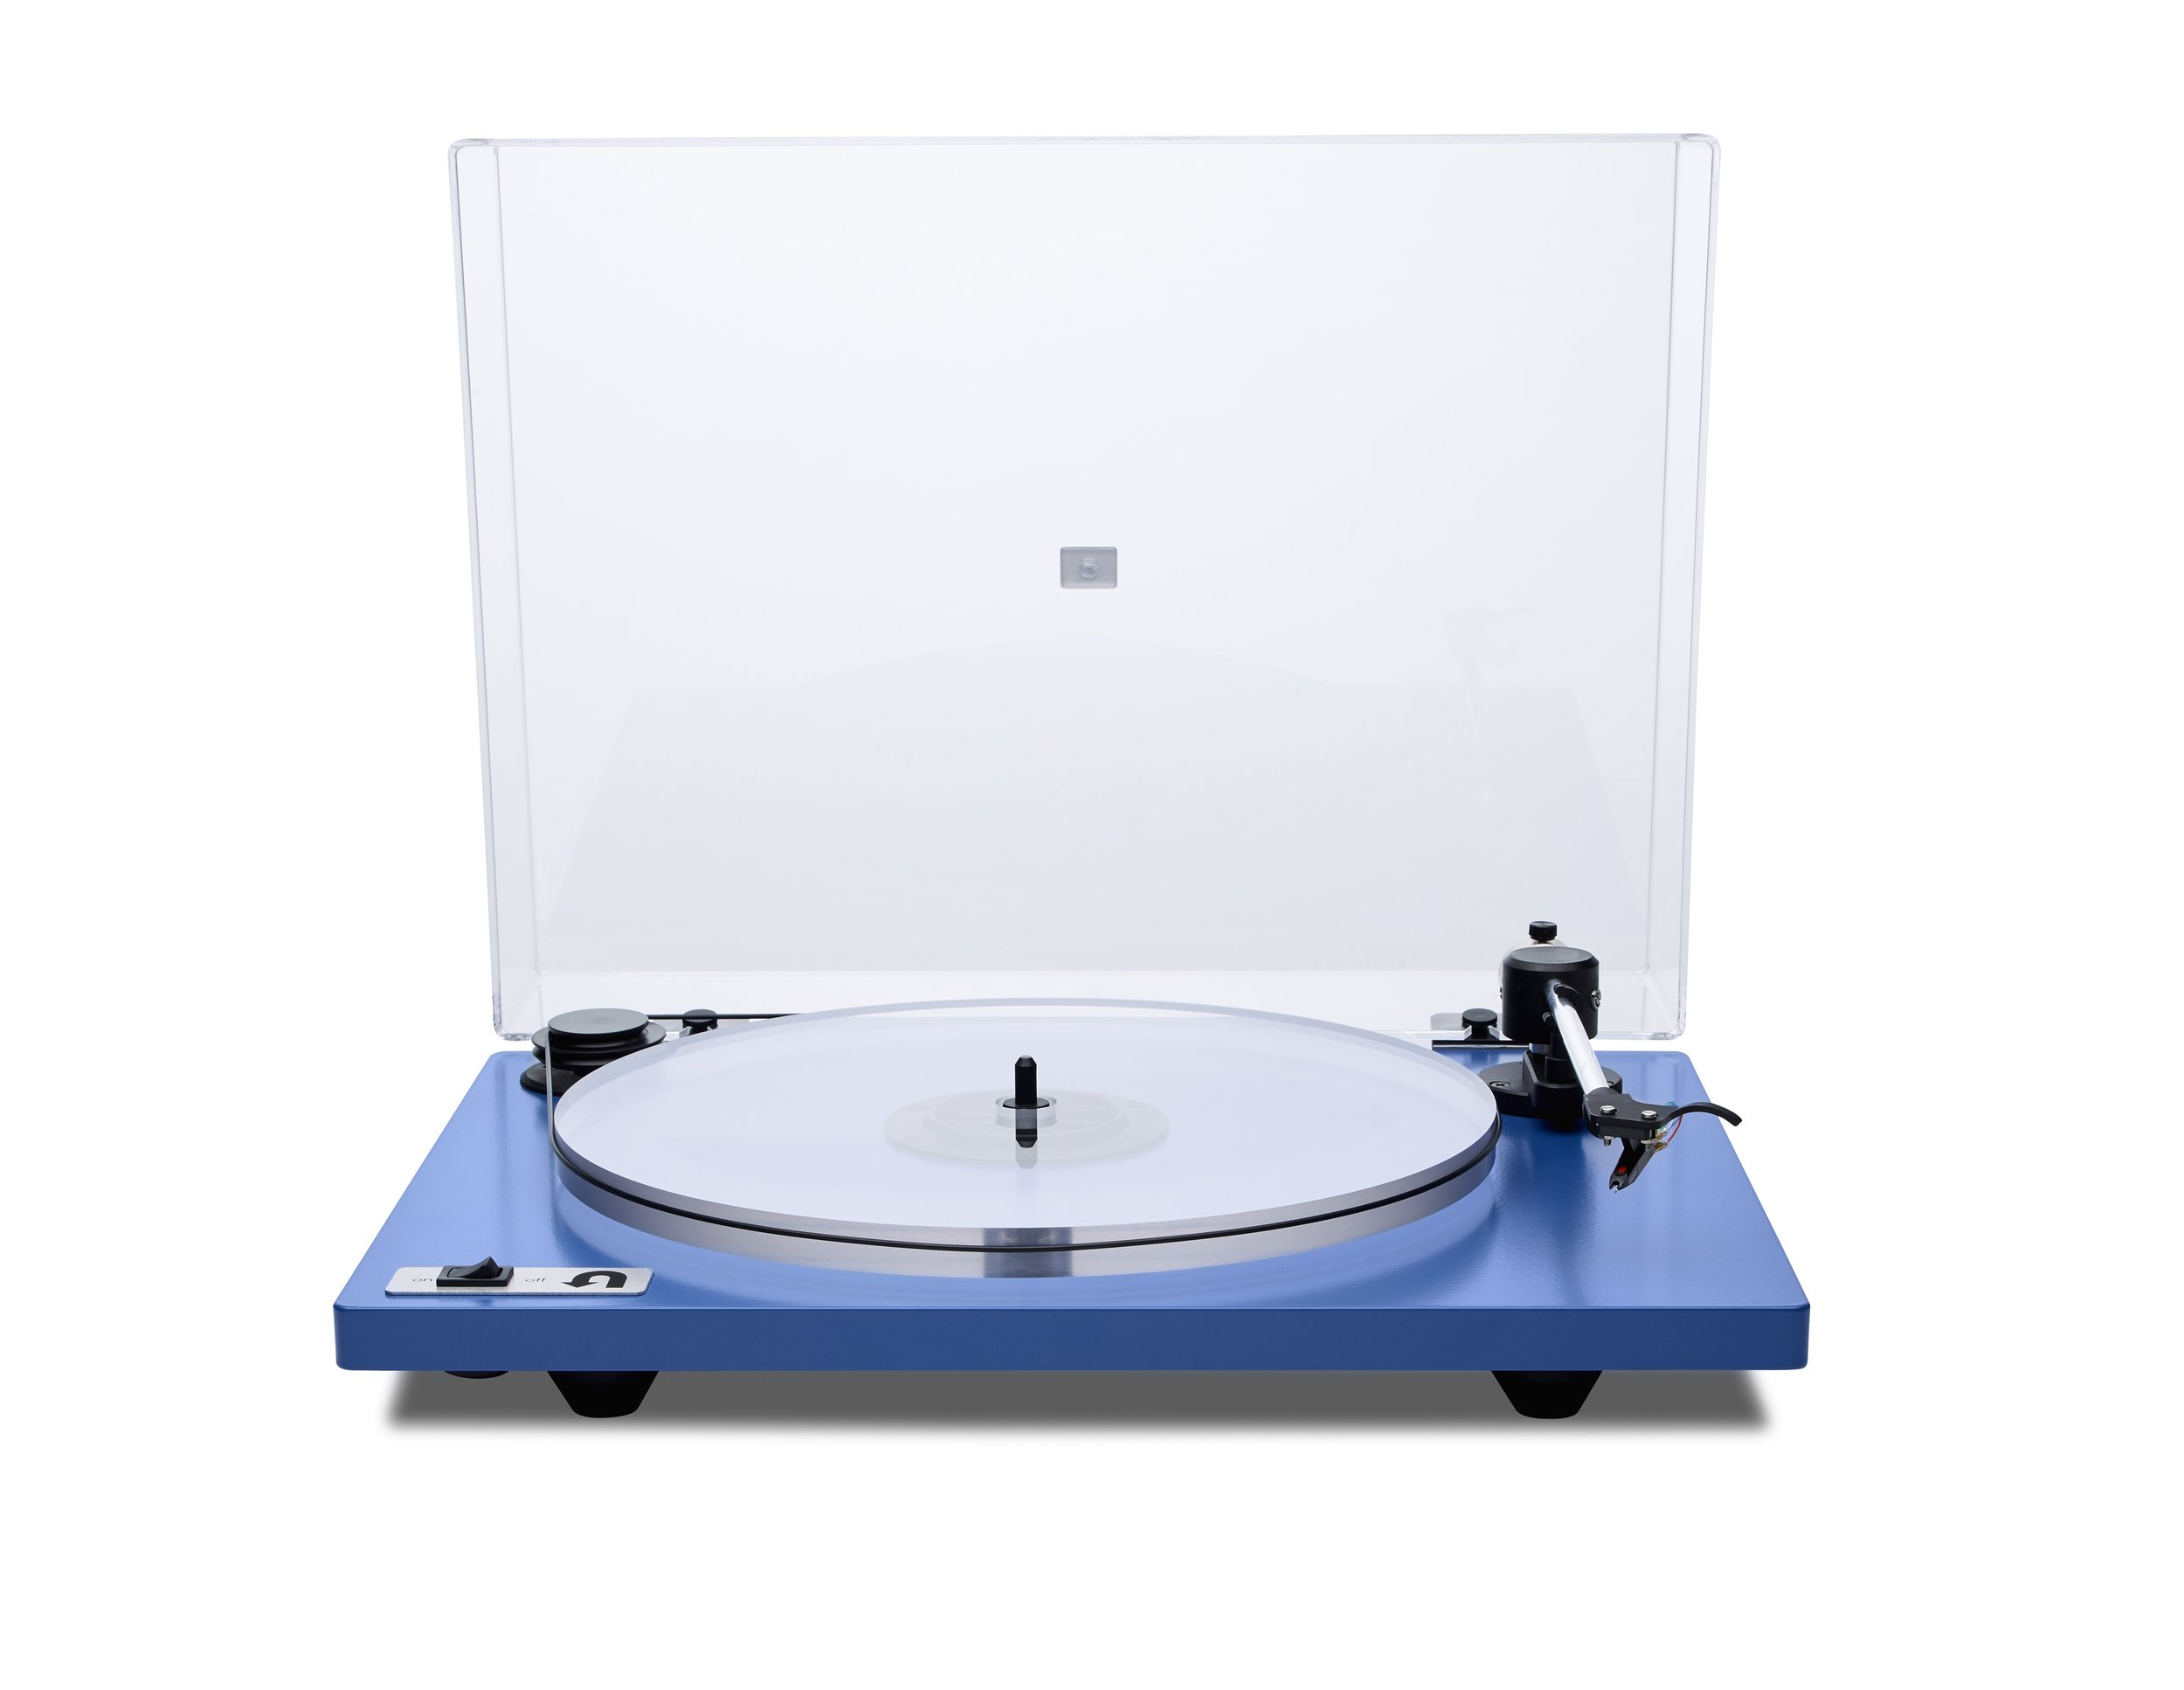 ORBIT PLUS - BLUE ACRYLIC PLATTER ORTOFON OM5E CARTRIDGE DUST COVER w/amp $359 w/amp $359 wo/amp 309